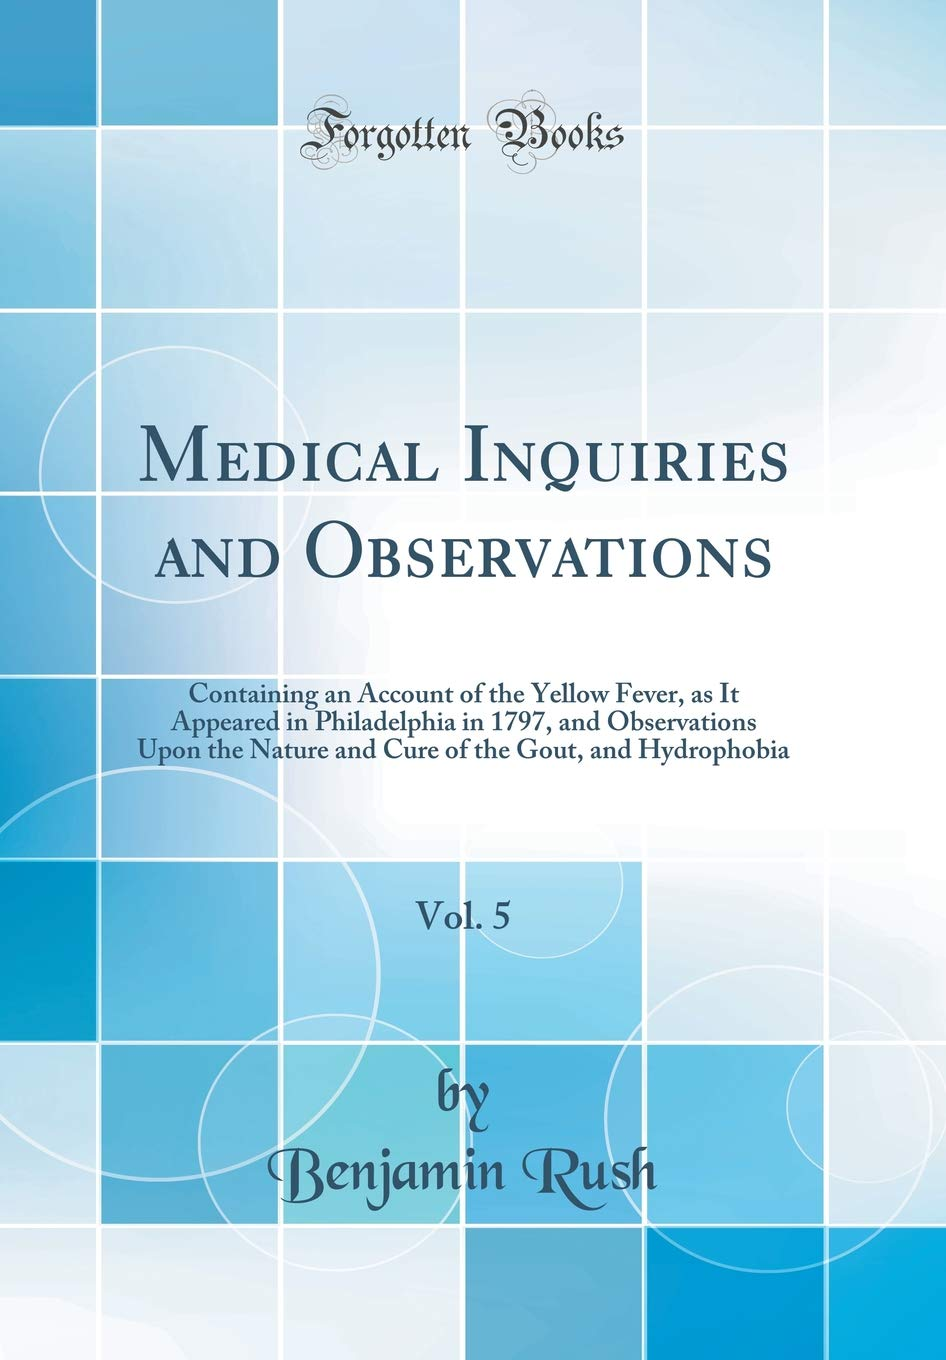 Medical Inquiries and Observations, Vol. 5: Containing an Account of the Yellow Fever, as It Appeared in Philadelphia in 1797, and Observations Upon ... the Gout, and Hydrophobia (Classic Reprint) pdf